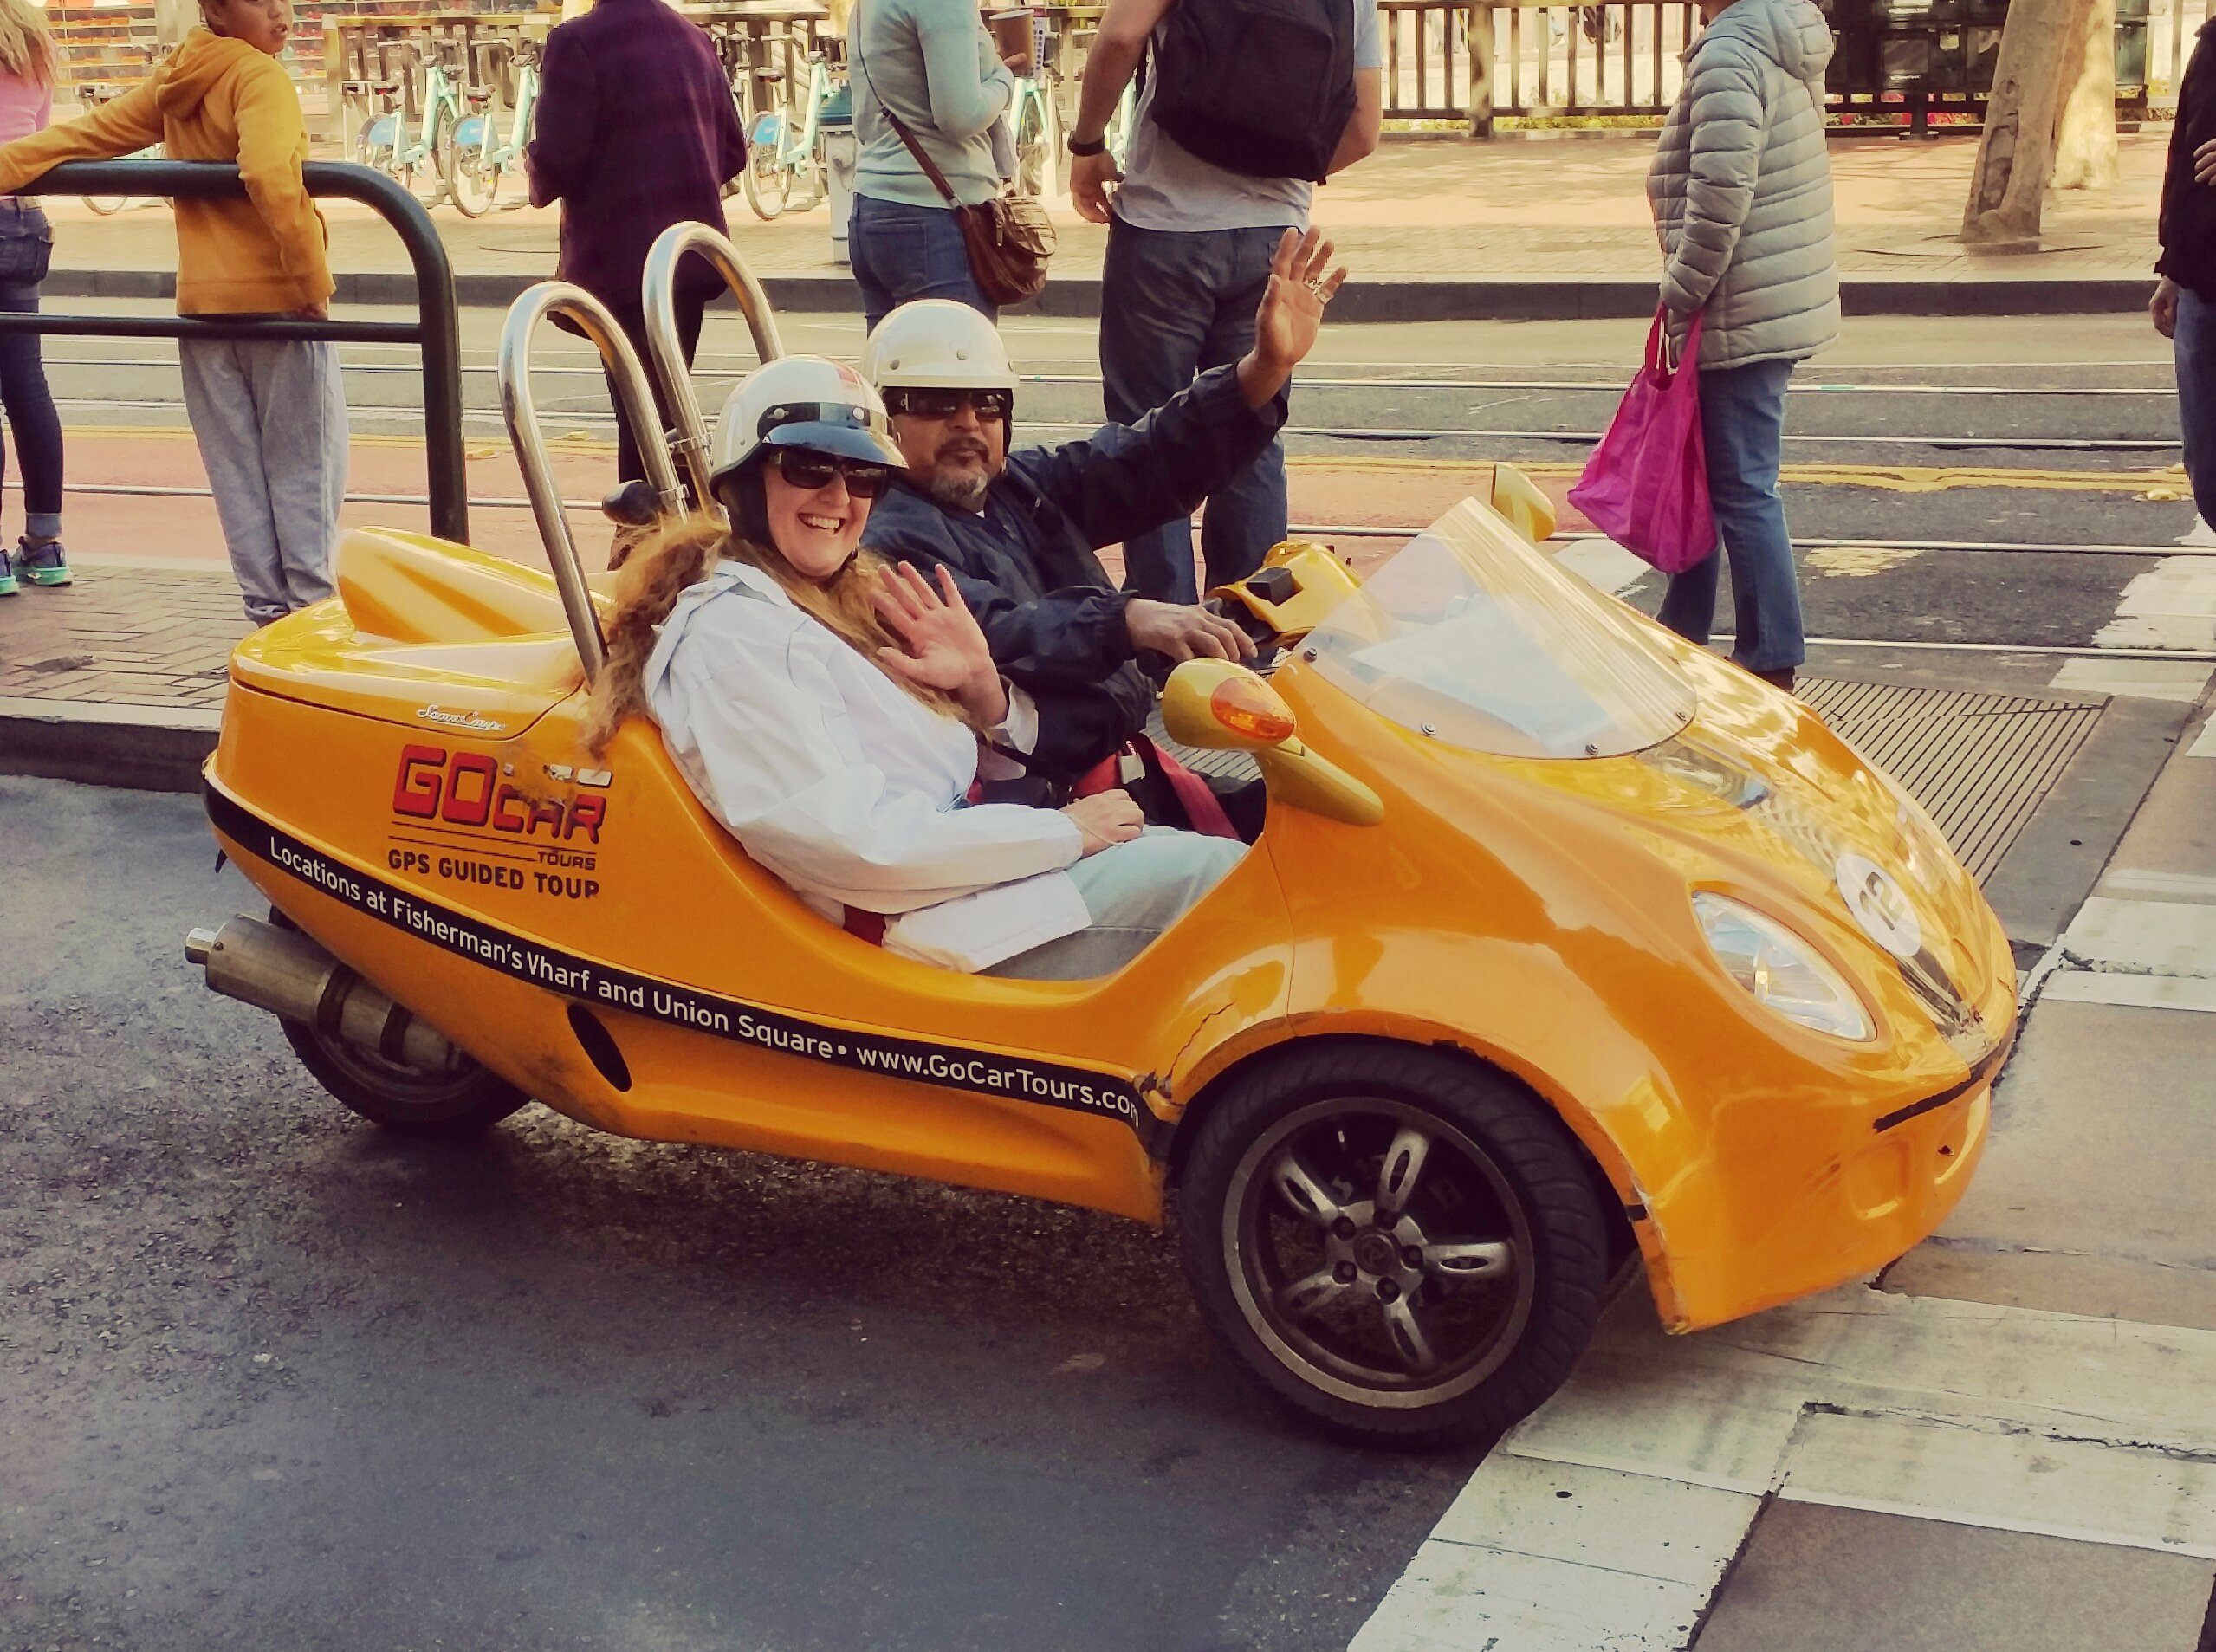 Go Car: A fun new way to visit Barcelona